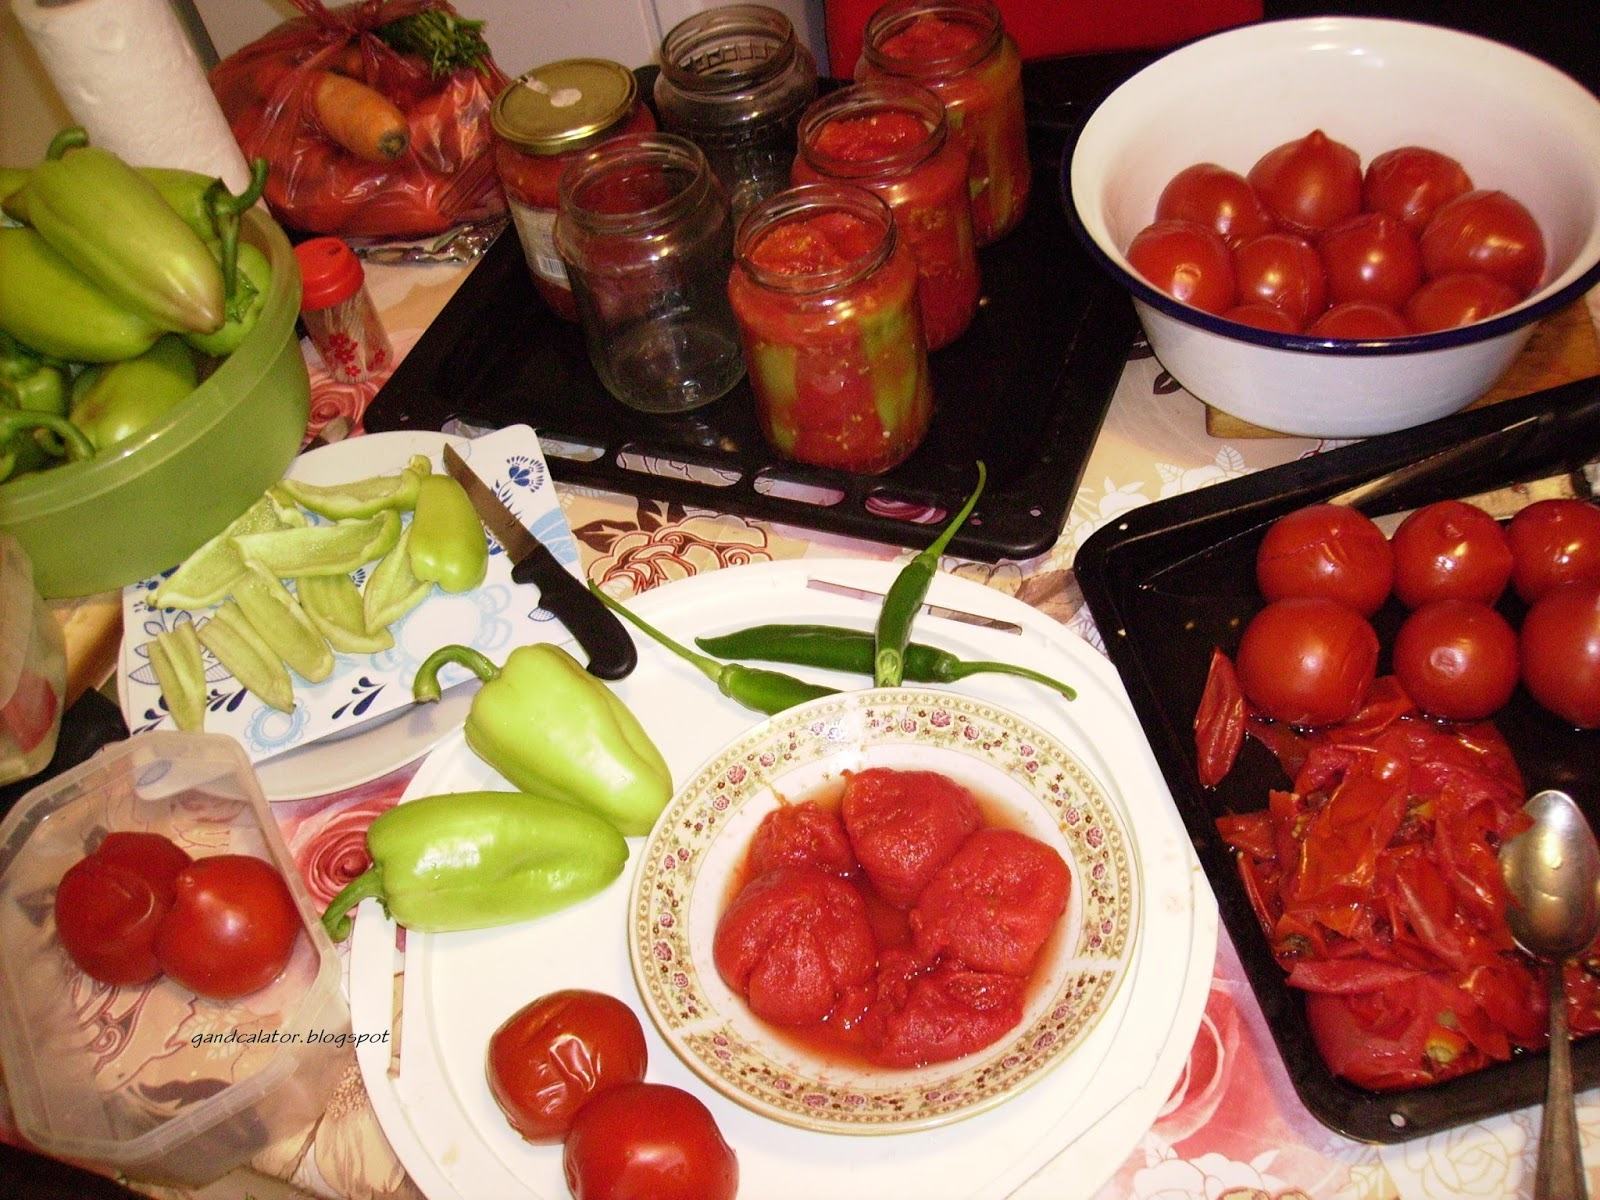 Tomate şi ardei. Tomatoes & peppers. Tomate şi ardei/ Peeled tomatoes, chopped bell peppers/chili peppers...